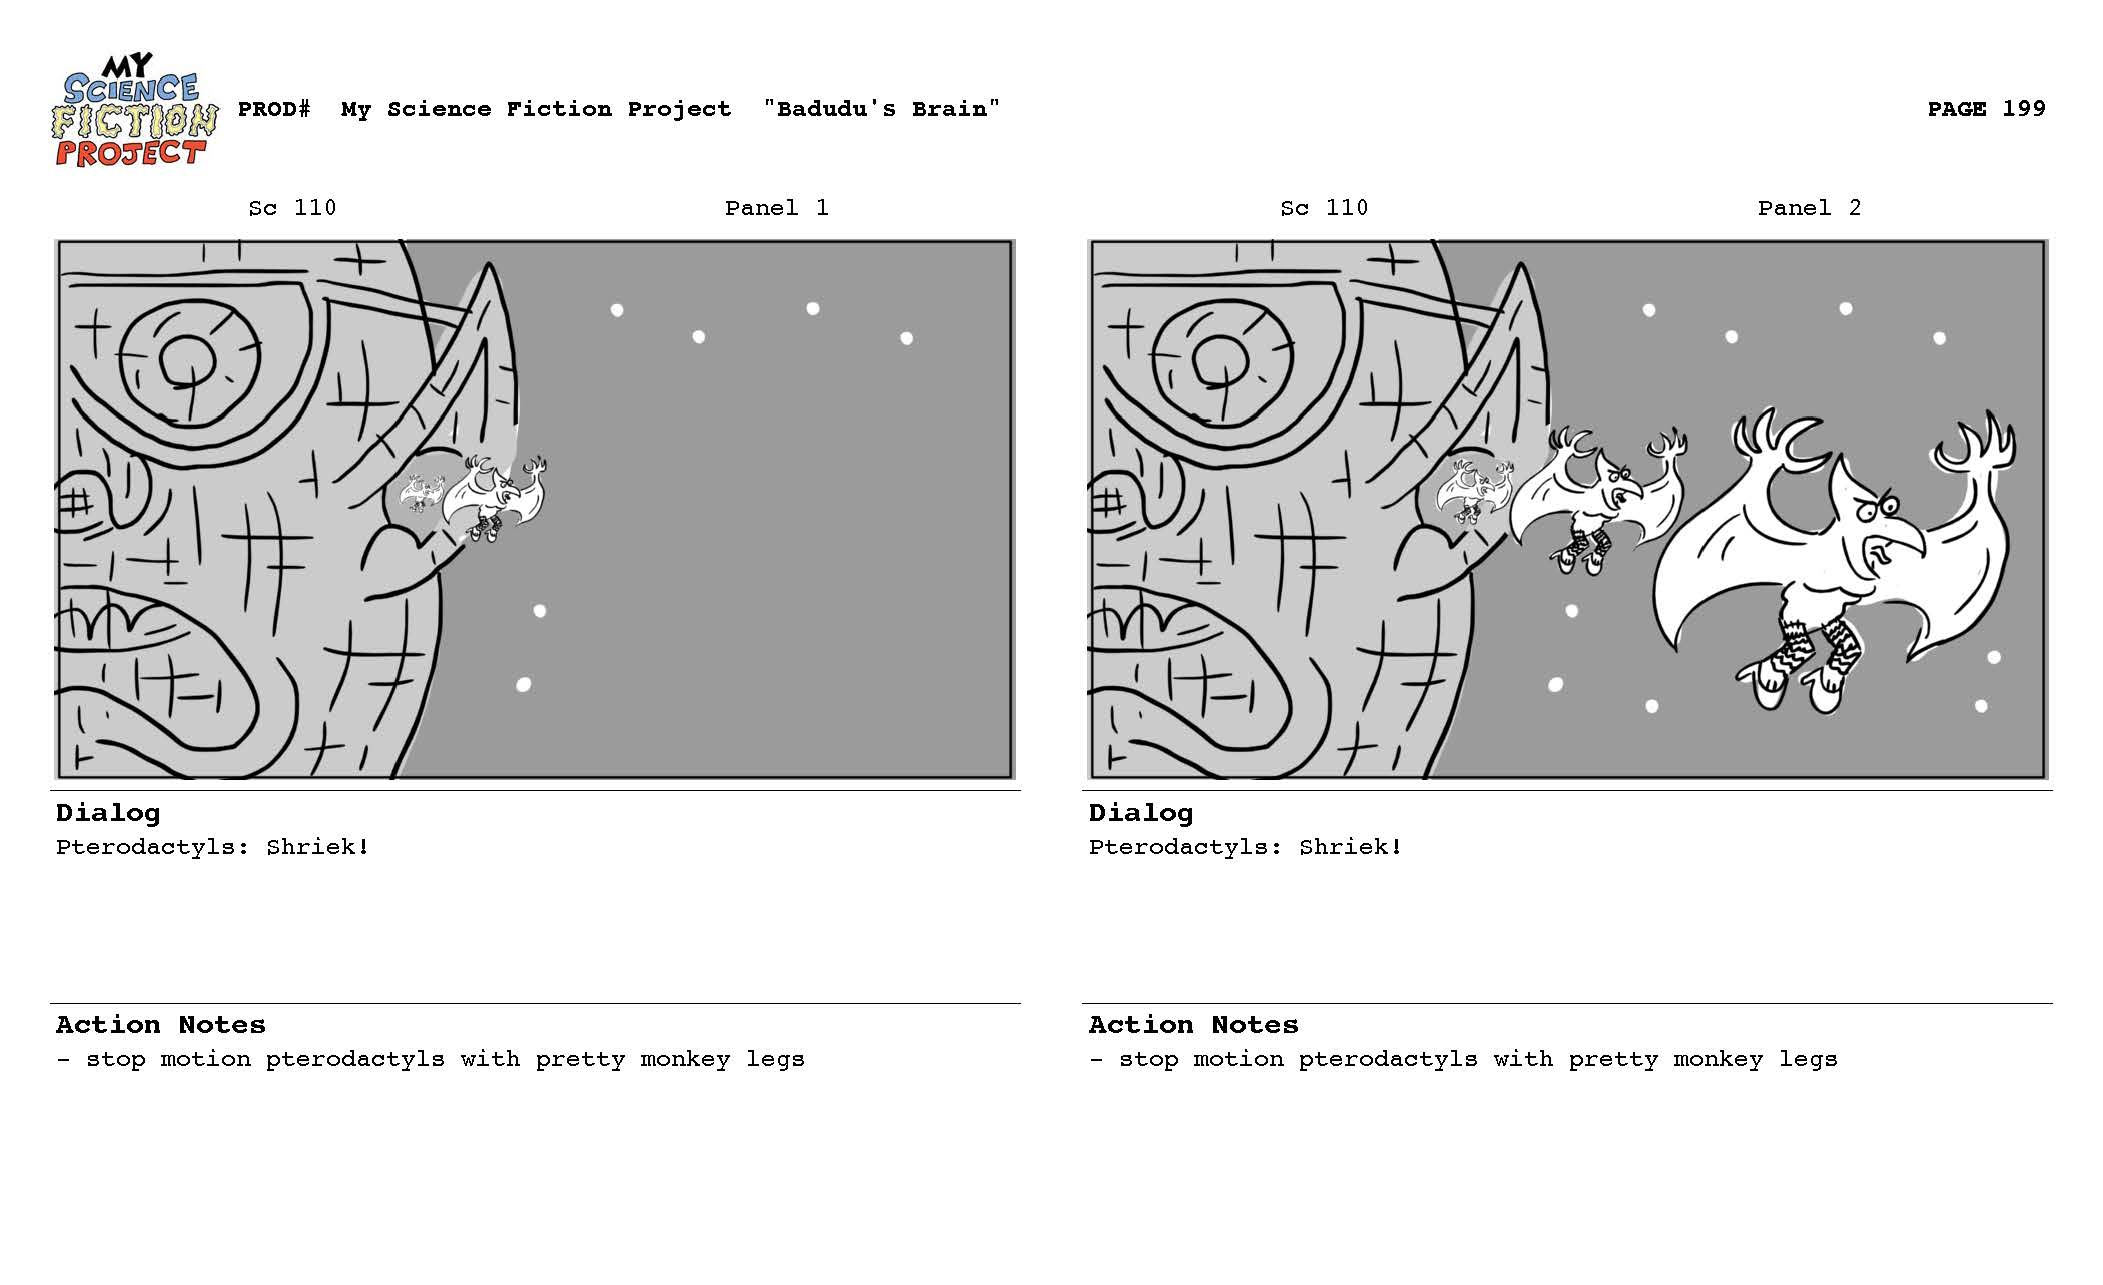 My_Science_Fiction_Project_SB_083112_reduced_Page_199.jpg